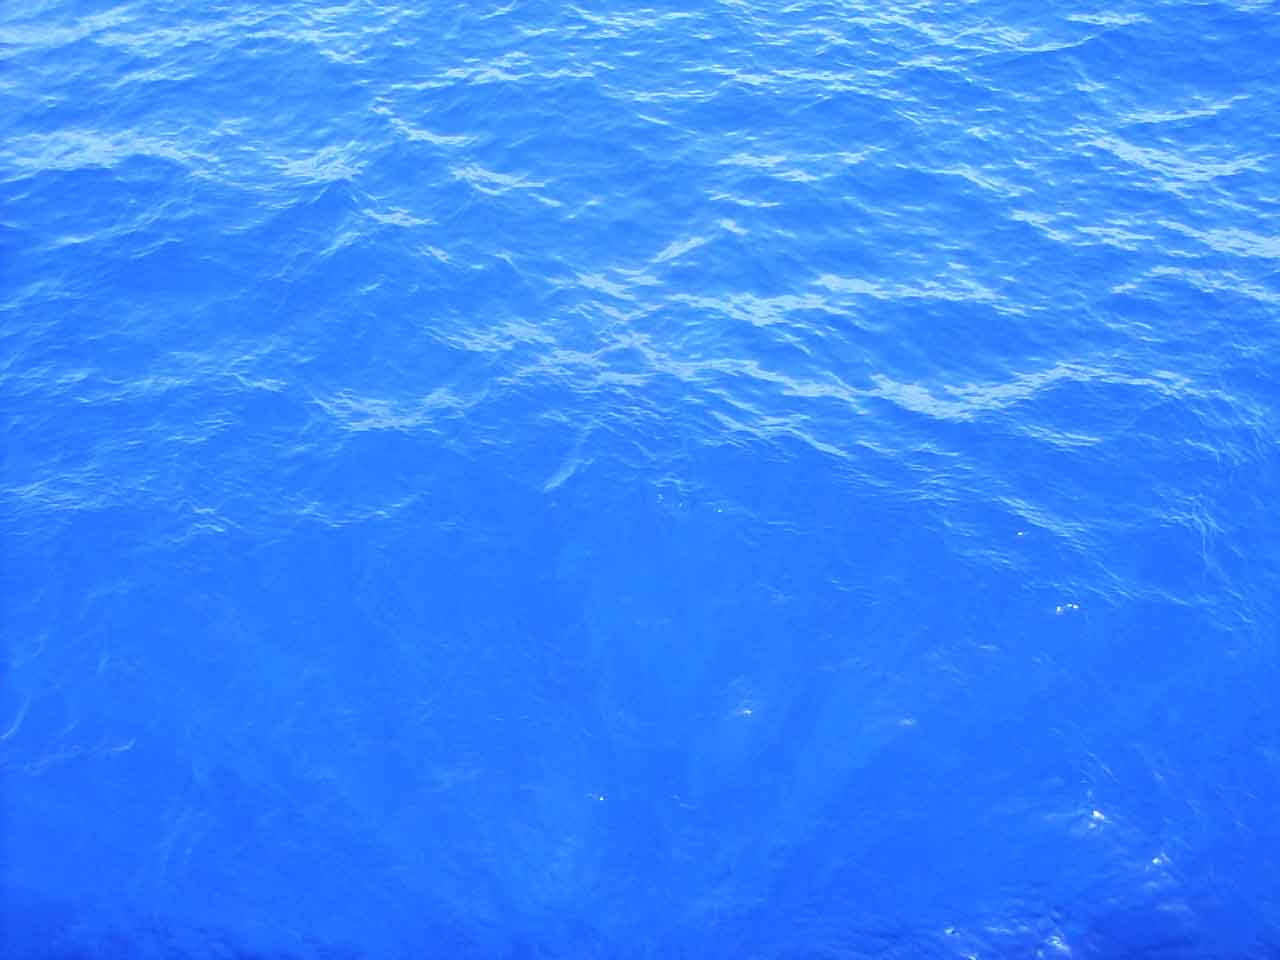 blue water texture, blue water, texture, background, download photo